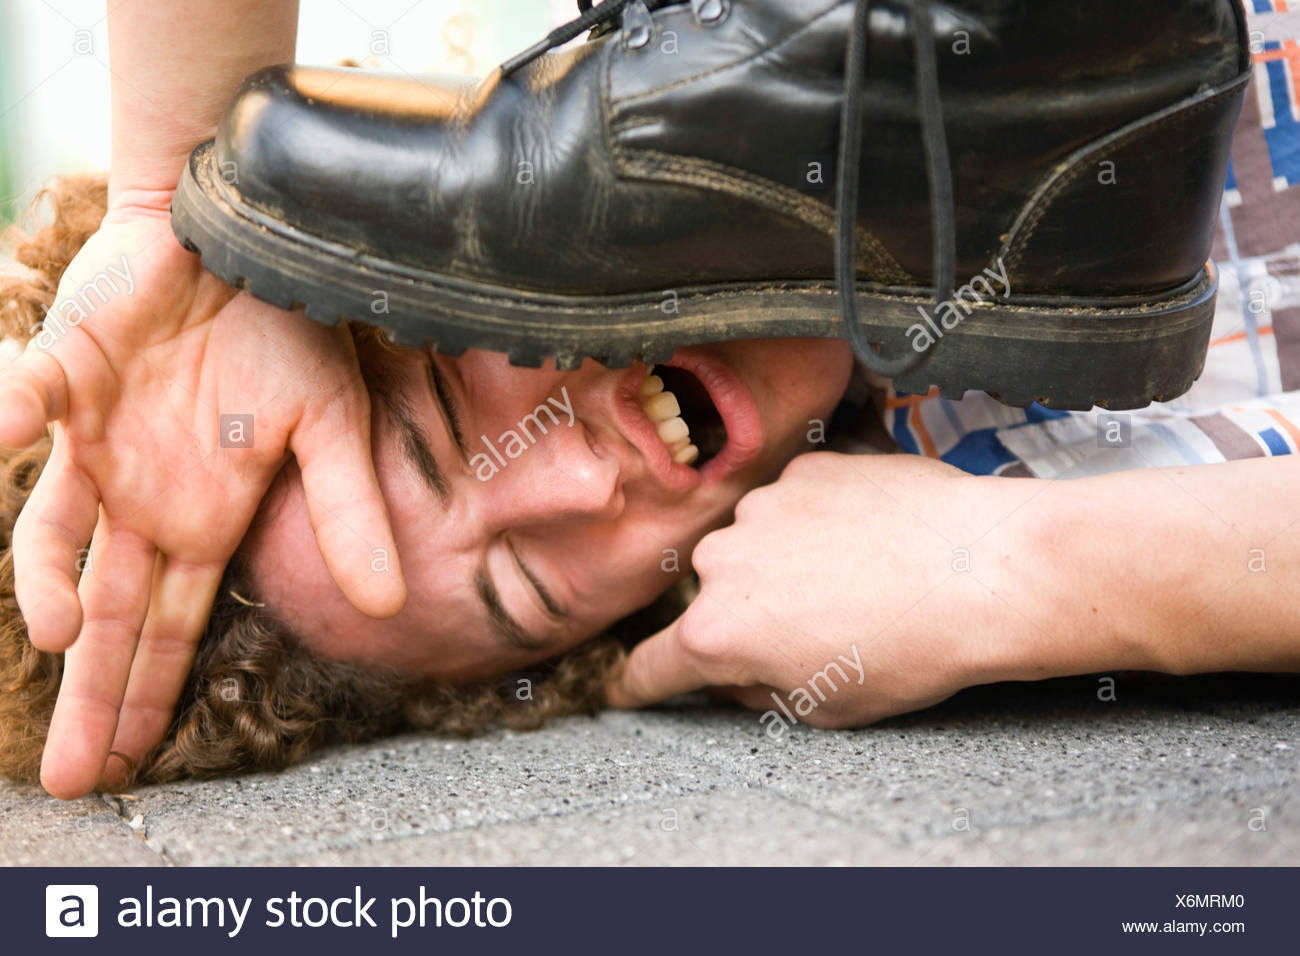 Young man lying on ground being stepped on by someone wearing black boot - Stock Image